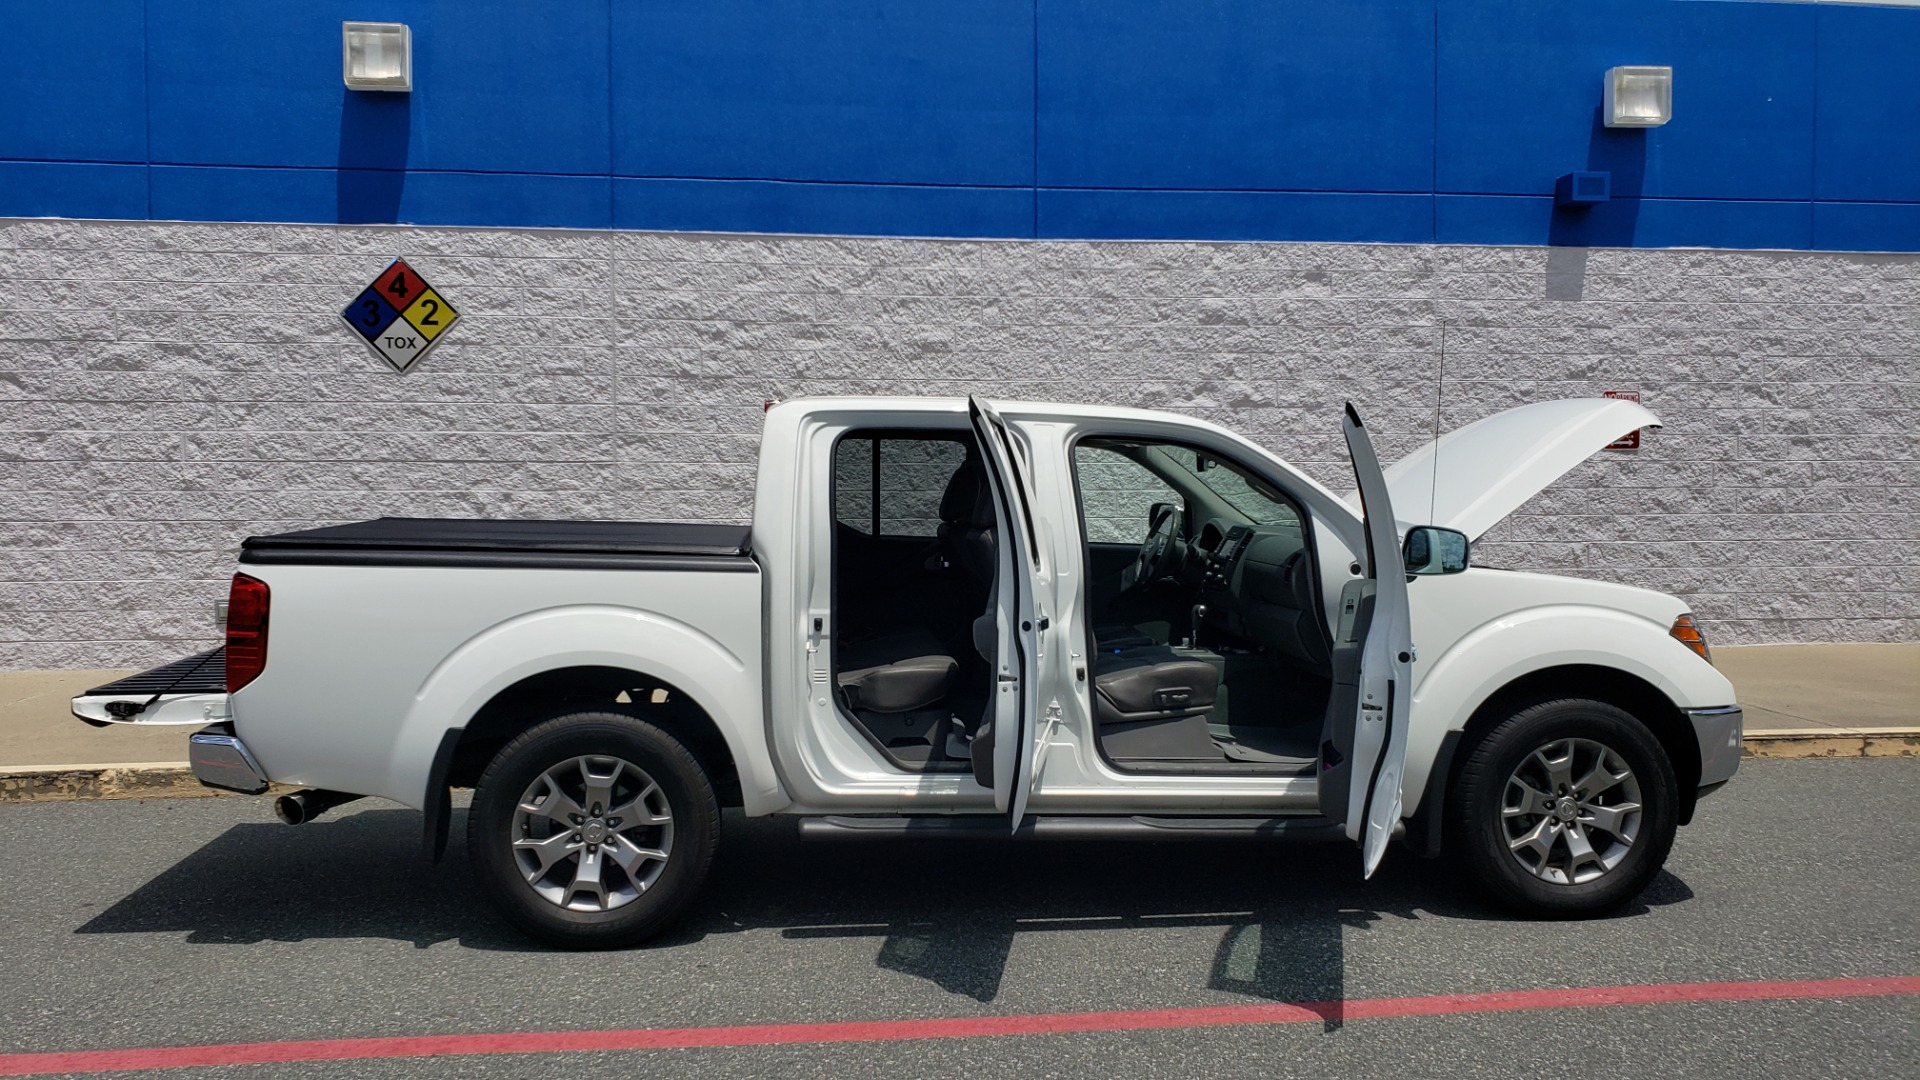 Used 2019 Nissan FRONTIER SL CREW CAB / 4X4 / NAV / SUNROOF / ROCKFORD FOSGATE / LOADED for sale $31,495 at Formula Imports in Charlotte NC 28227 11